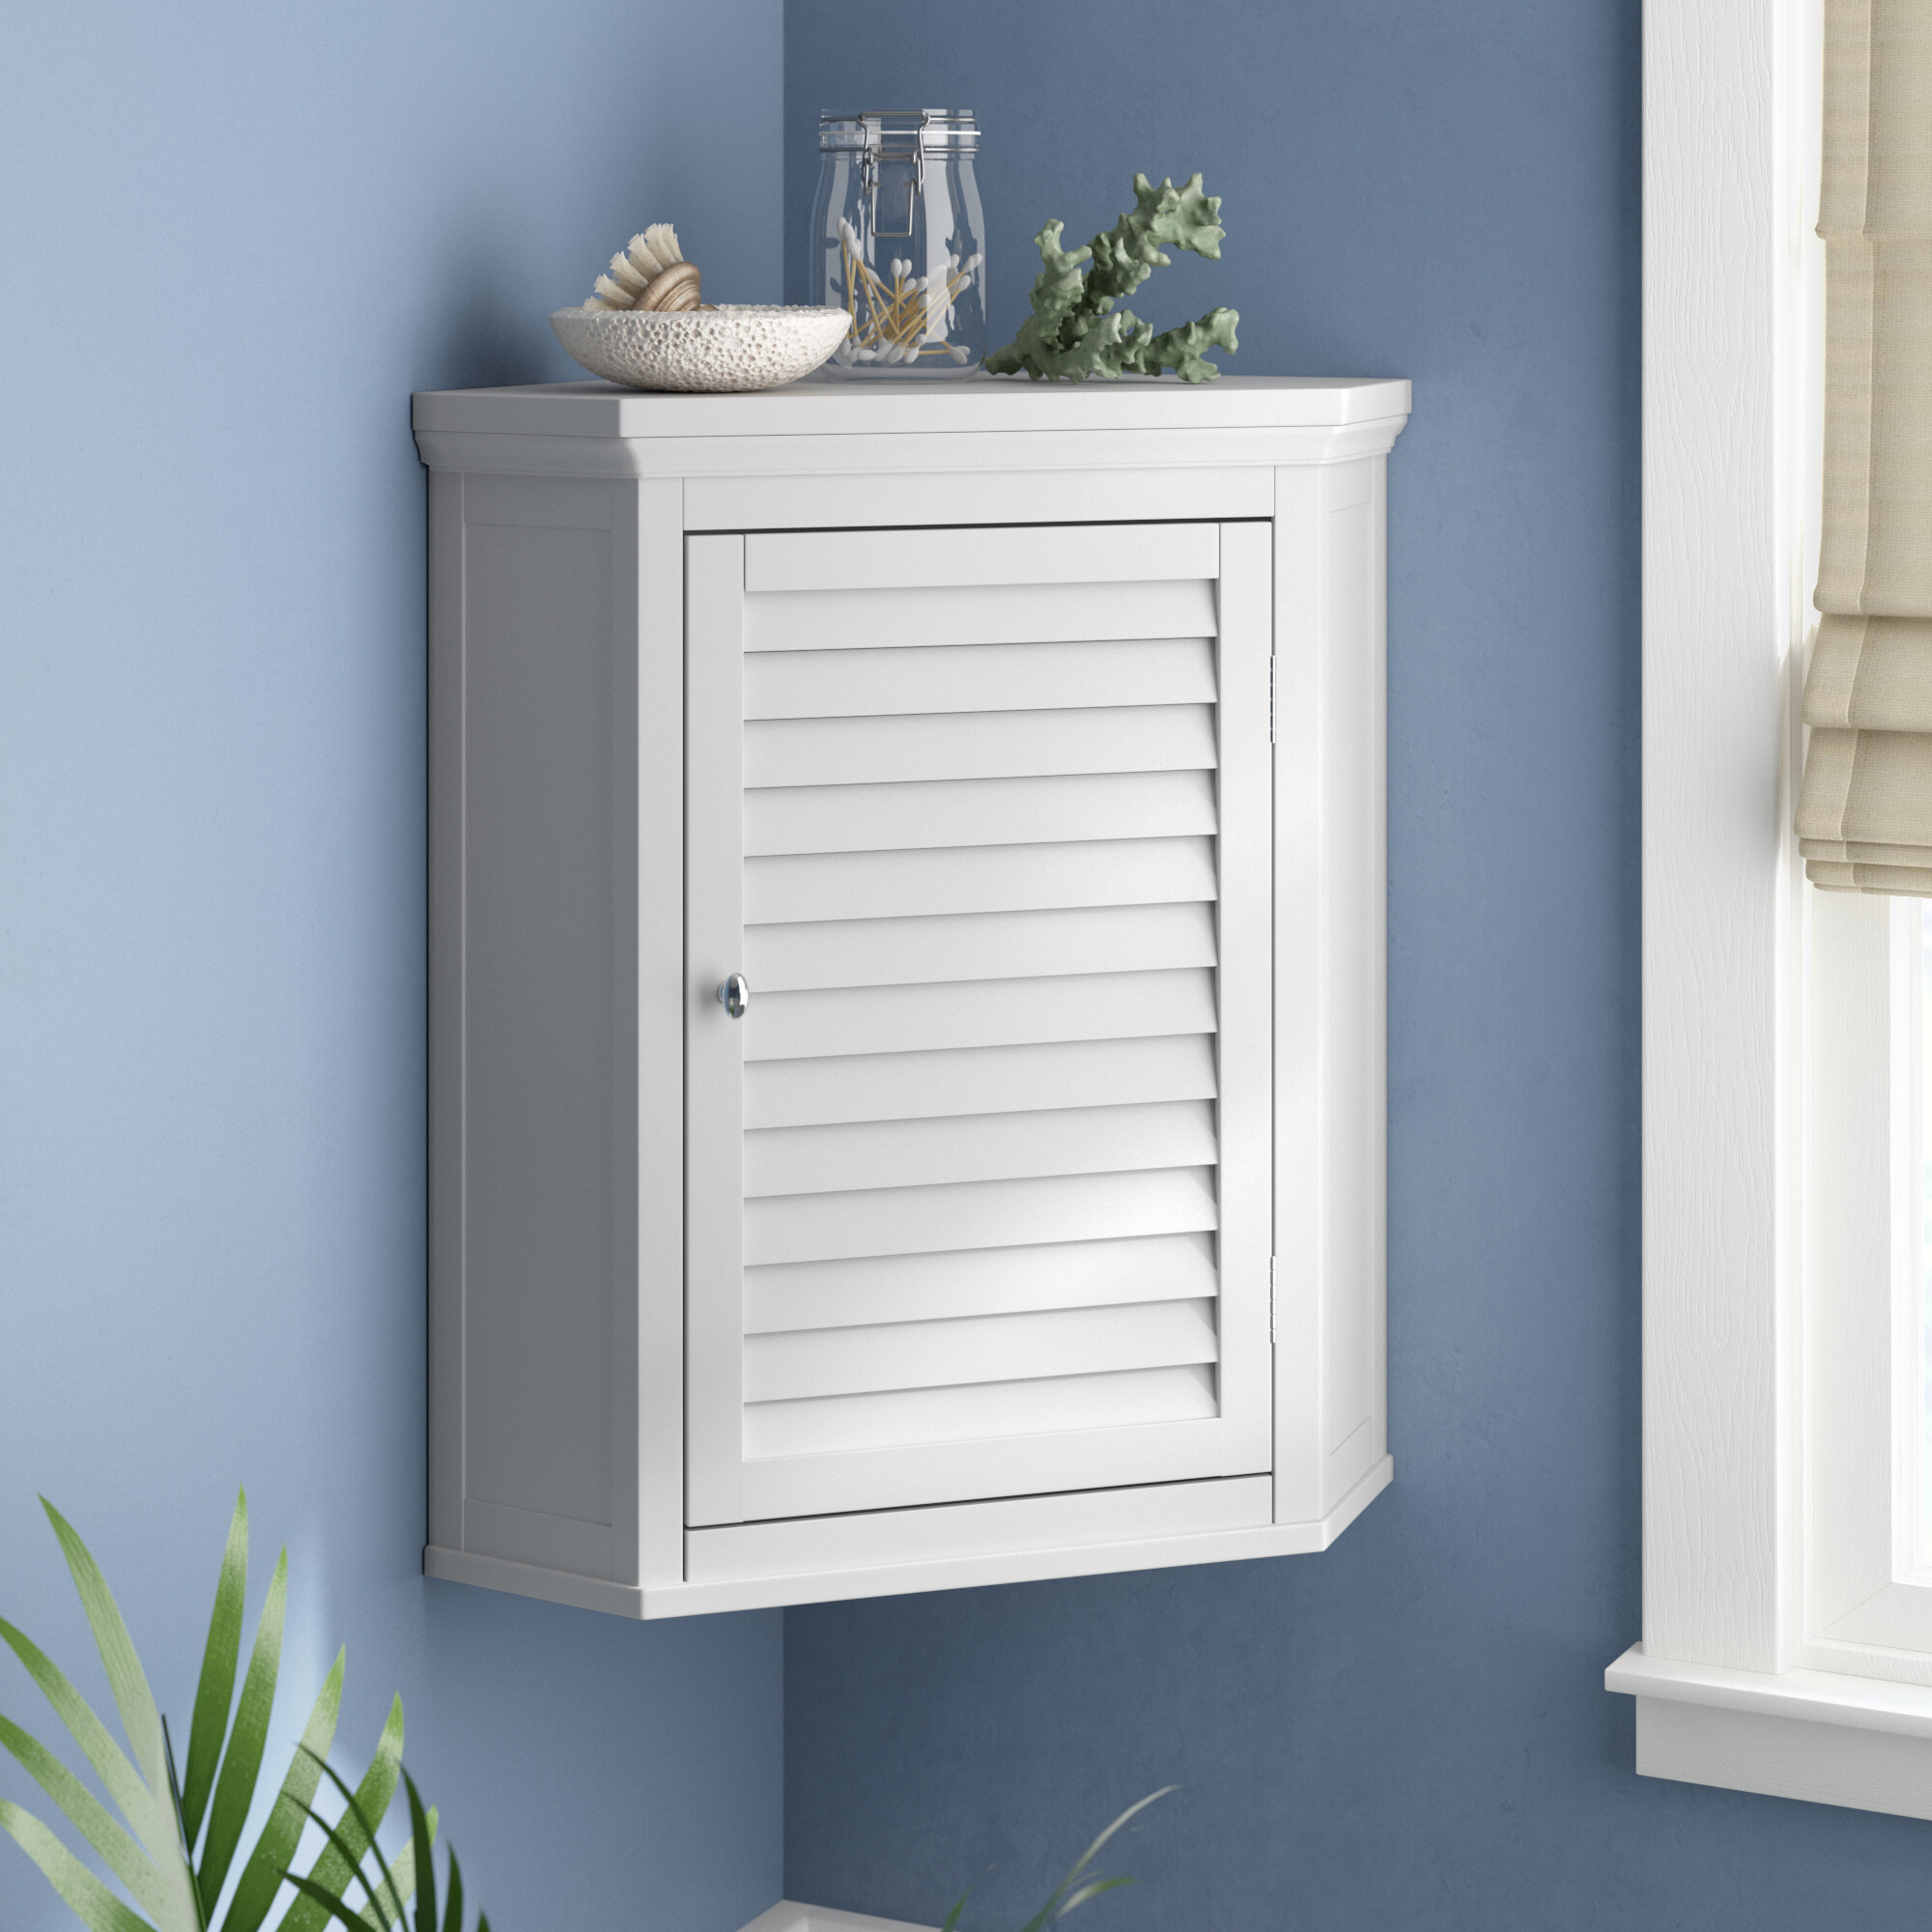 Beachcrest Home Broadview Park 22 5 W X 24 H X 15 D Wall Mounted Bathroom Cabinet Reviews Wayfair Ca